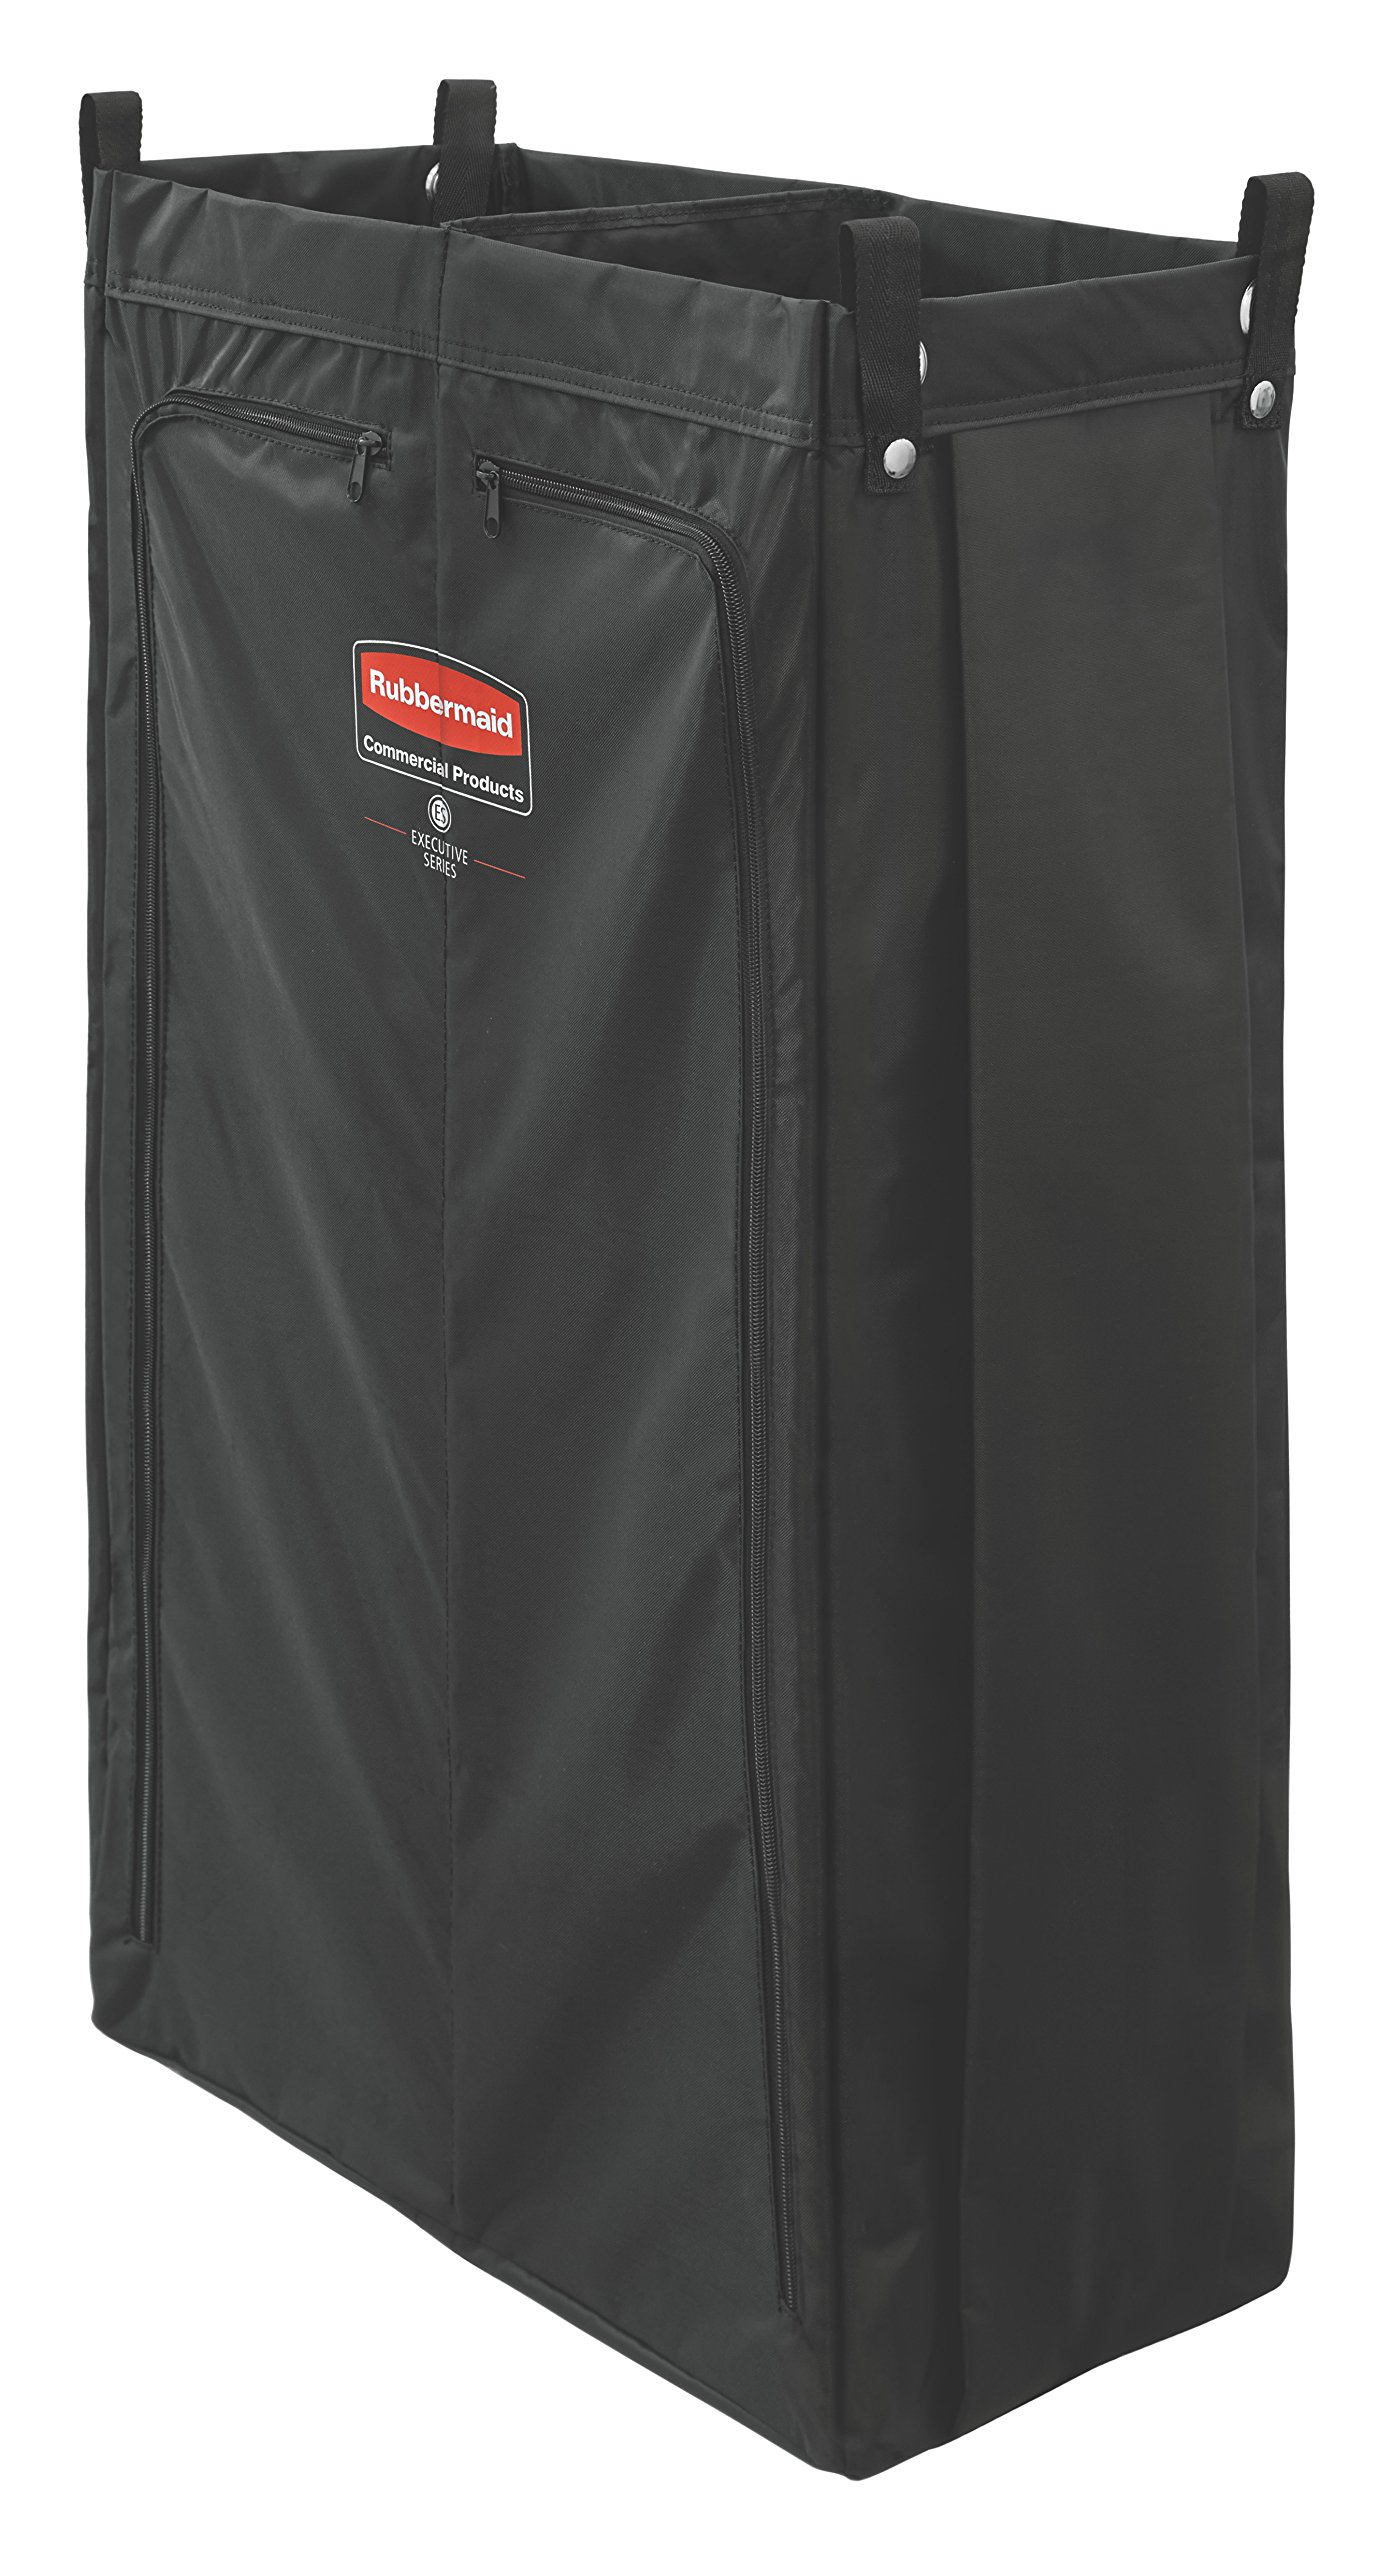 Rubbermaid Commercial Products 1966912 Heavy-Duty Divided Fabric Bag